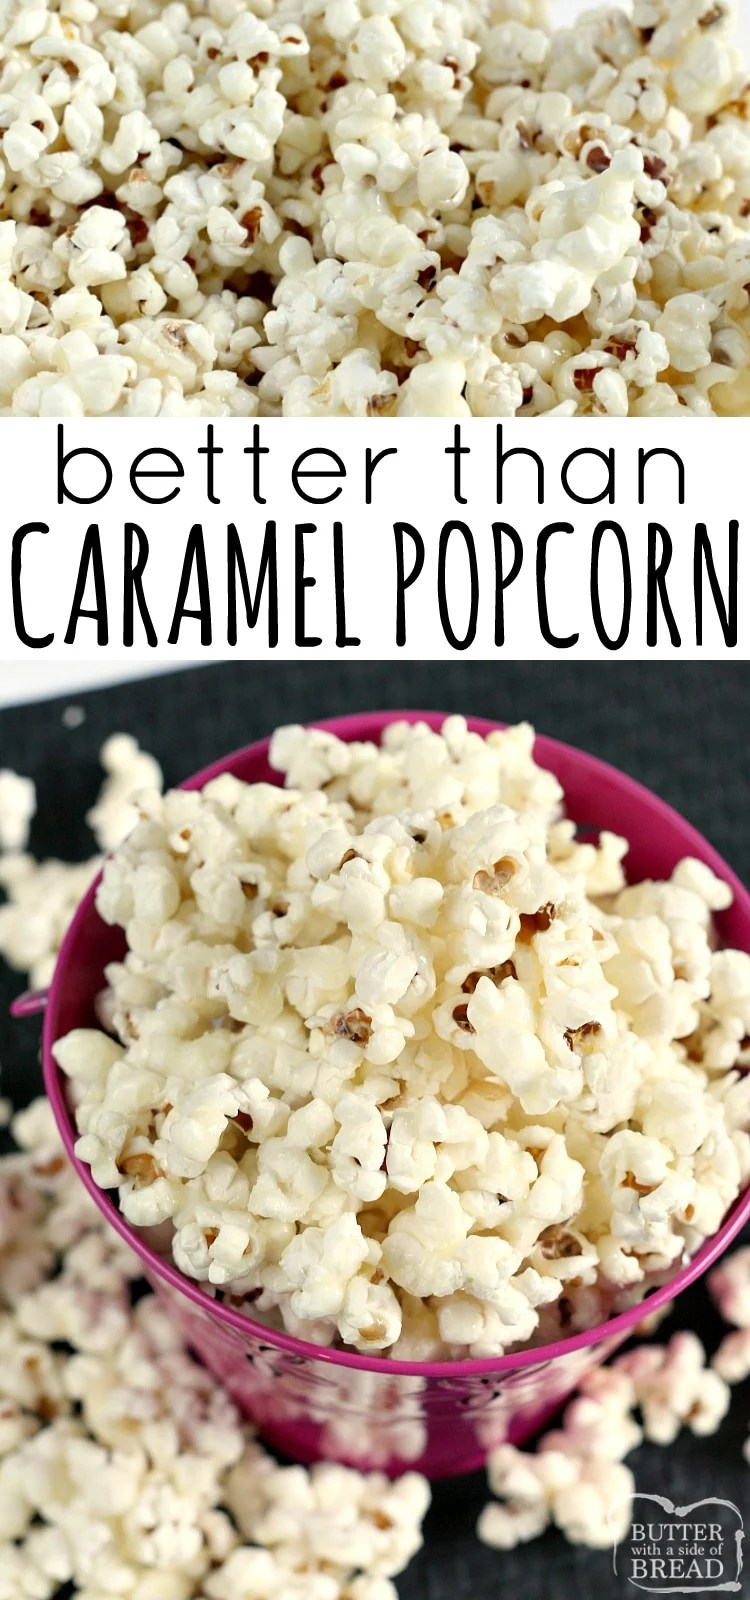 Better Than Caramel Popcorn is gooey, deliciously sweet and so easy to make with just a few simple ingredients! The coating in this caramel popcorn recipe is made with butter, sugar and whipping cream - that's it!